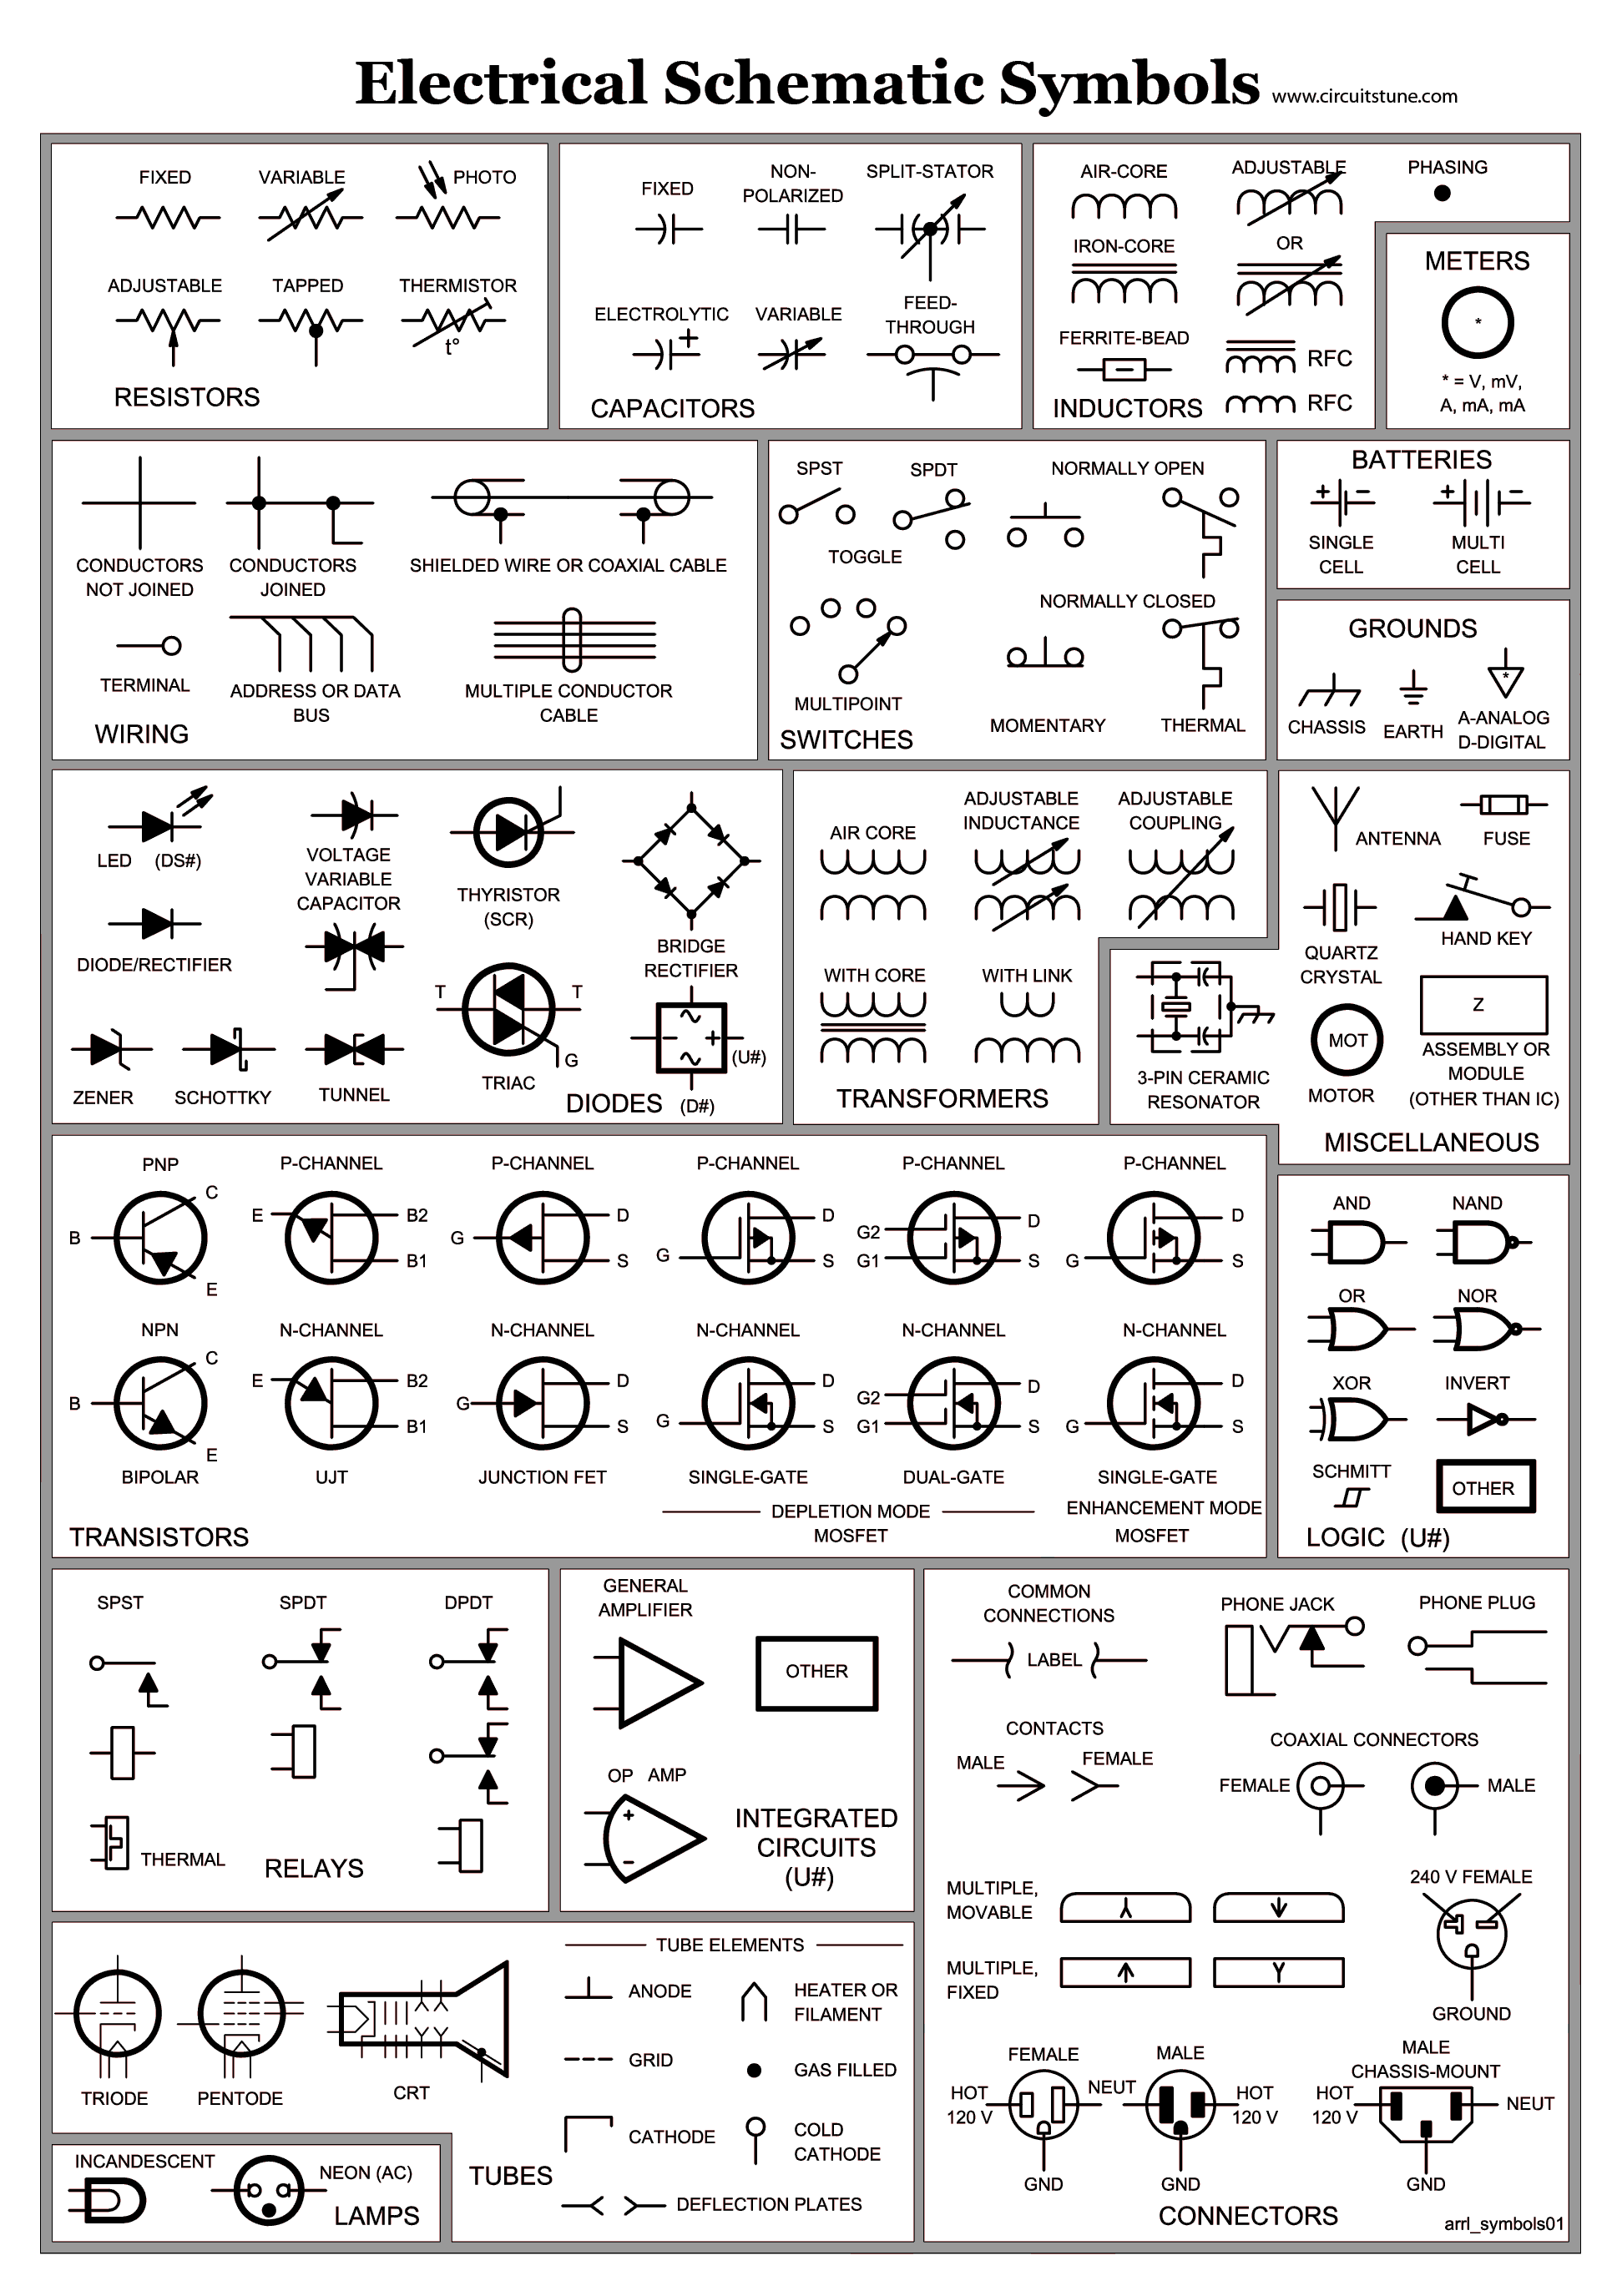 electrical schematic symbols skinsquiggles in 2018 pinterest residential  wiring diagrams symbols codes electrical schematic symbols electrical